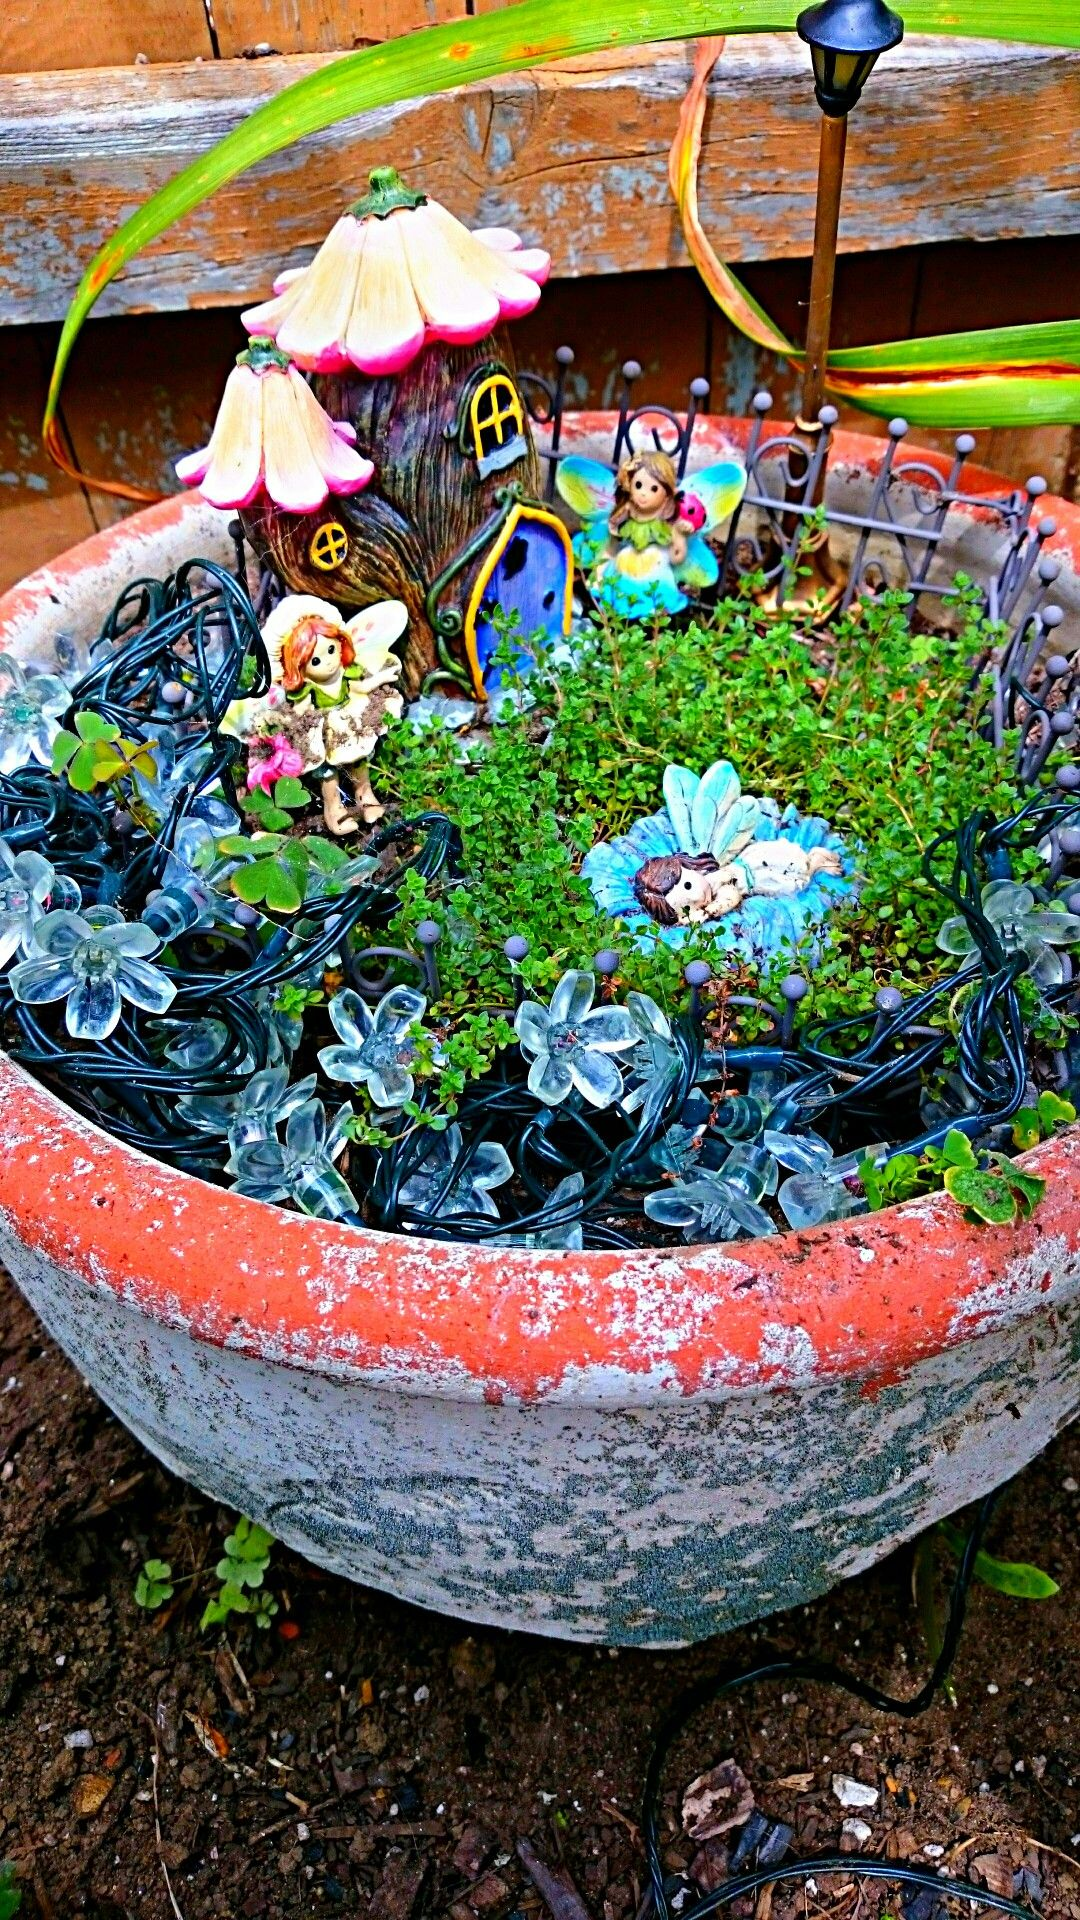 Solar Lights Twinkle At Night In This Fairy Garden